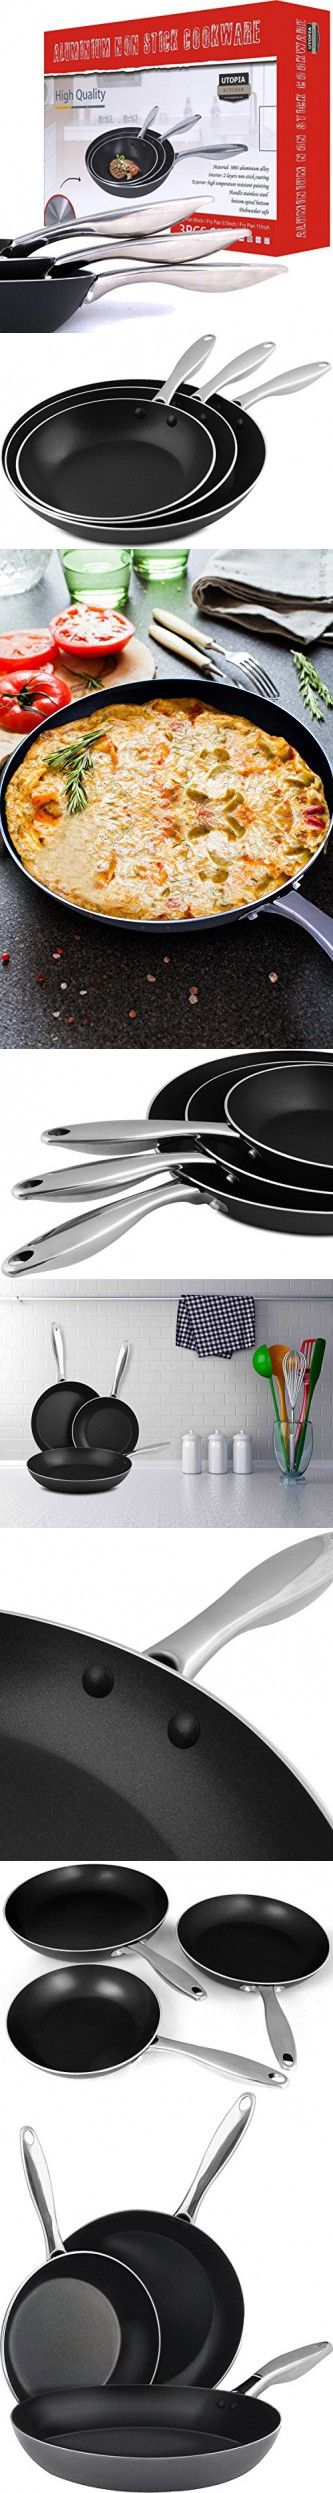 Utopia Kitchen Professional Oven Safe Nonstick 8 Inch, 9.5 Inch & 11Inch Frying pan Cookware Set, Dishwasher Safe, 3 Piece (3 Piece Frying Pan - Stainless Steel Handle)